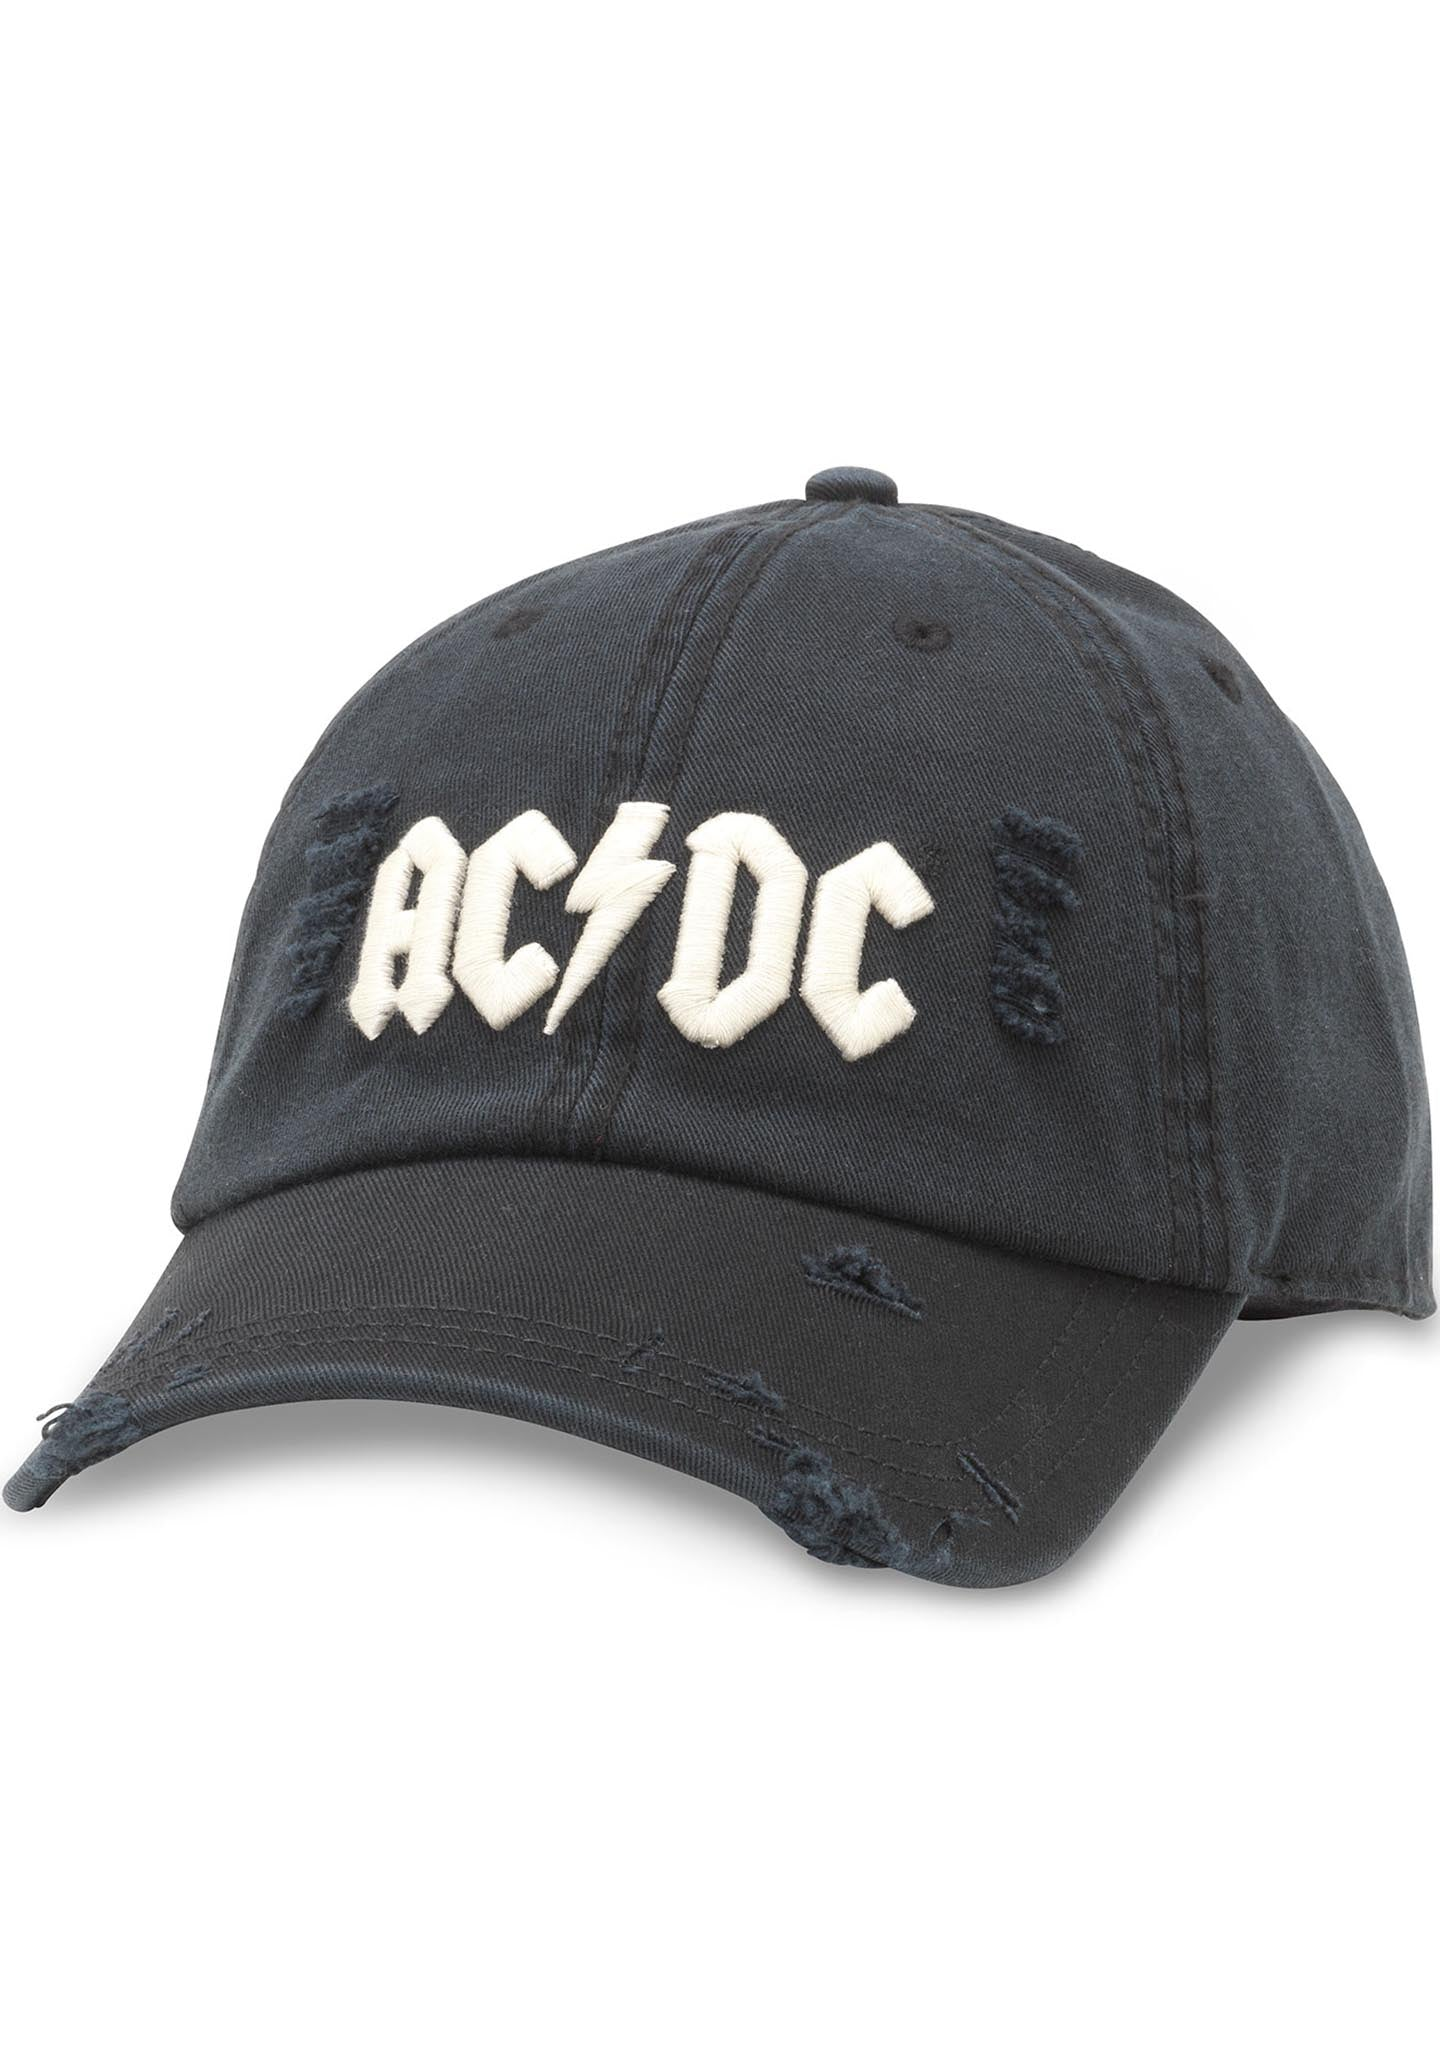 ACDC Shred Slouch Raglan Hat